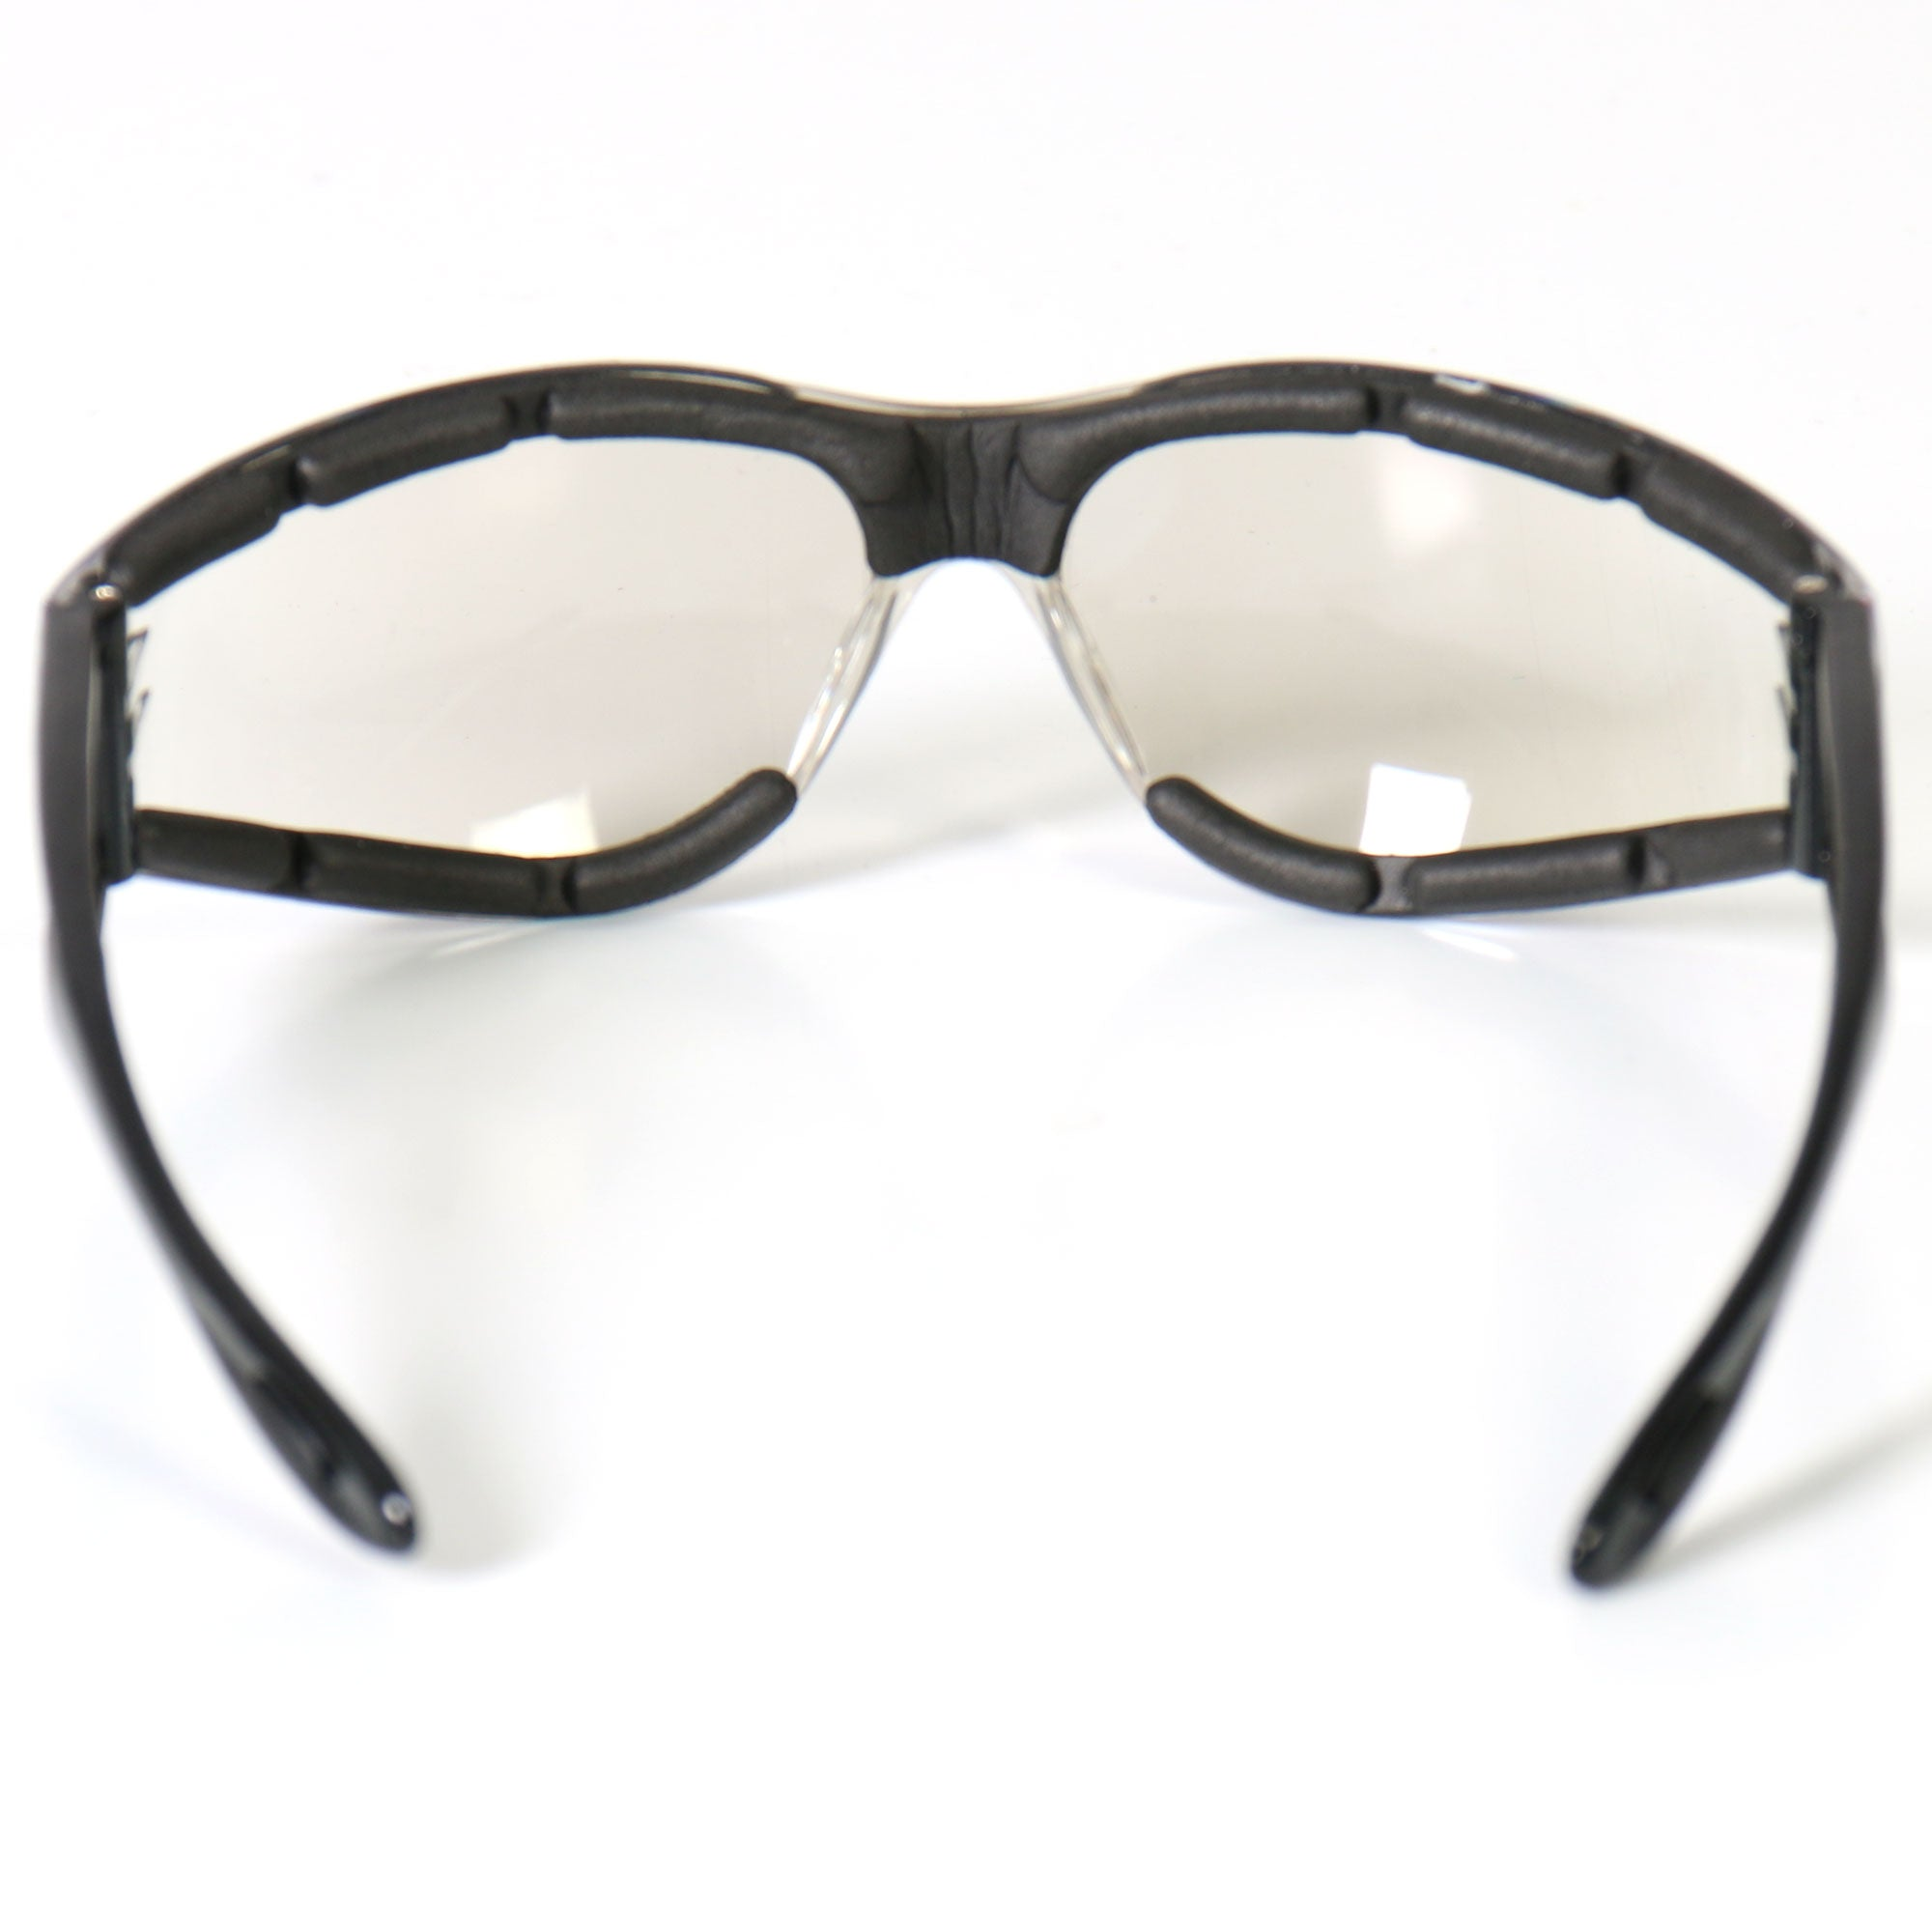 Hot Leathers Metal Flame Safety Sunglasses